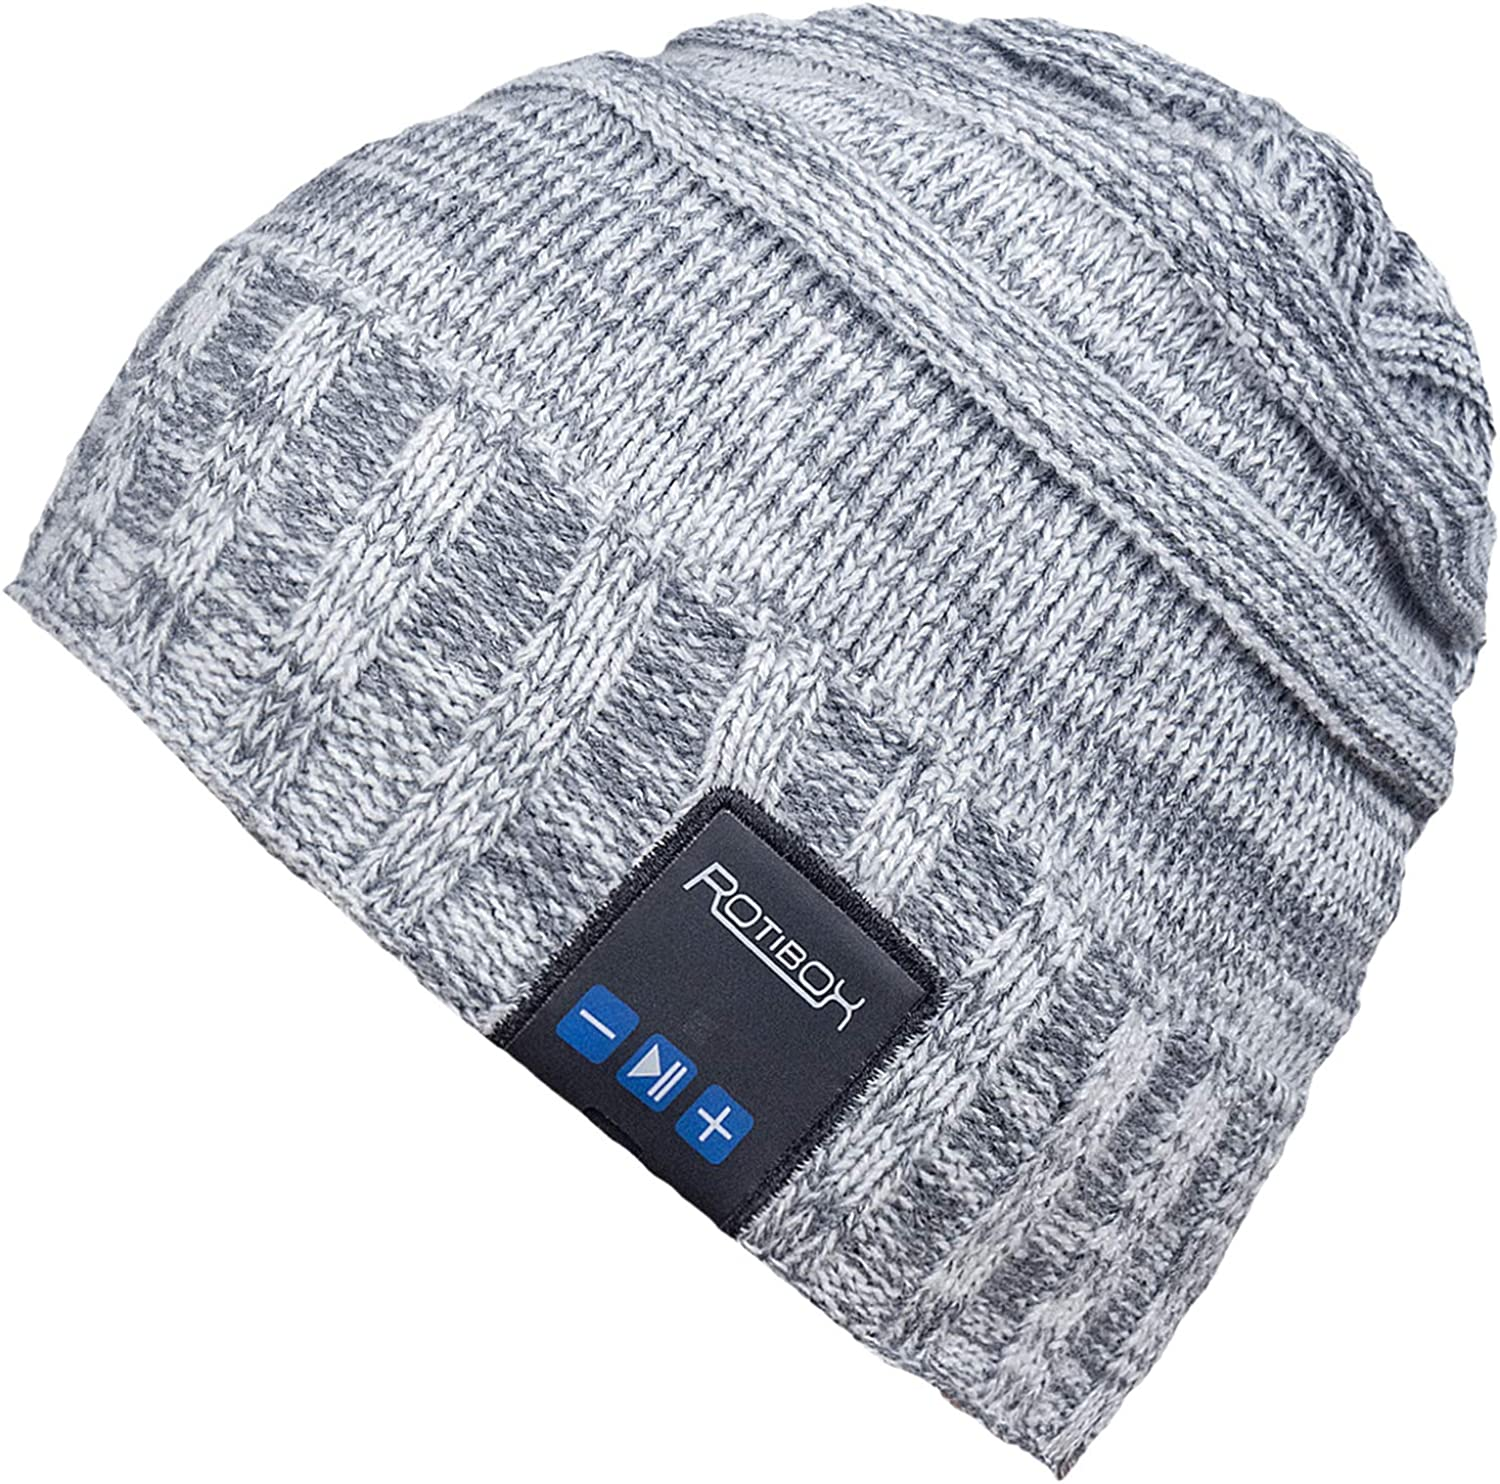 Mydeal Wireless Bluetooth Beanie Hat Music with Branded goods Cap Head San Antonio Mall Knitted